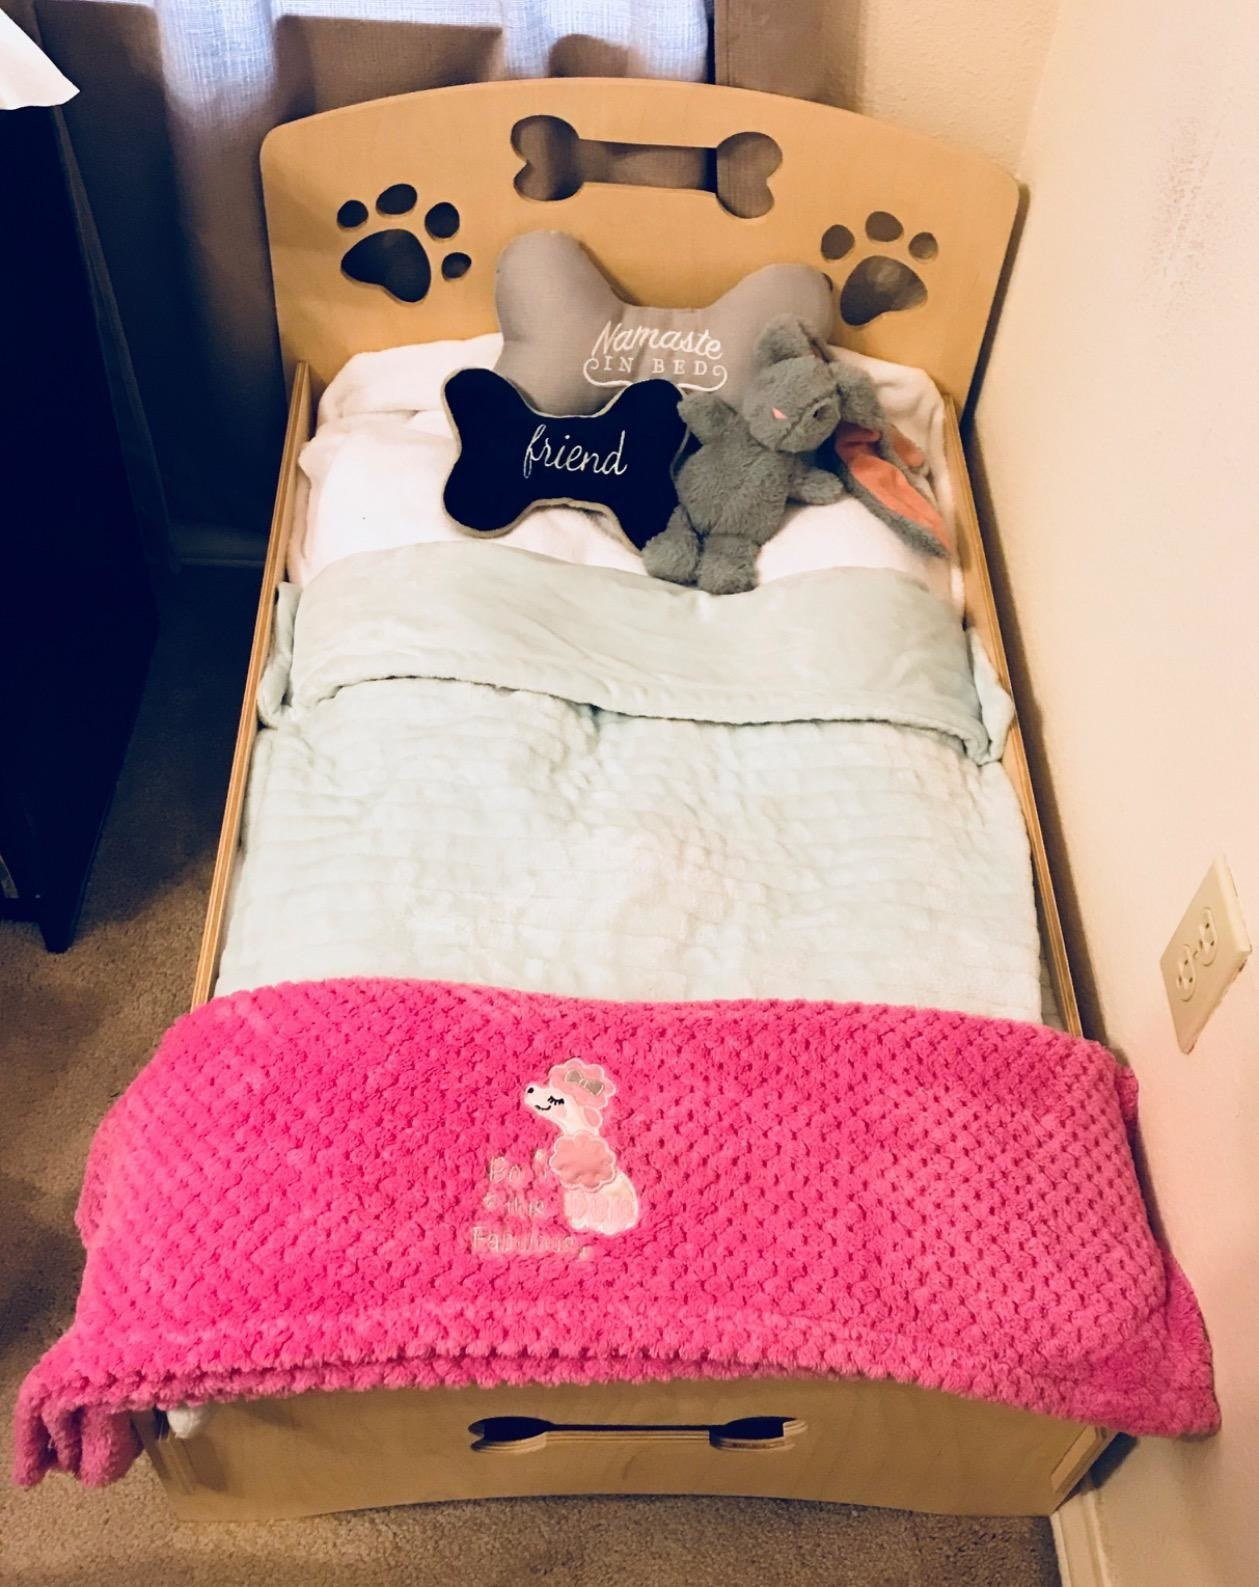 reviewer image of the wooden dog frame with pillows and sheets